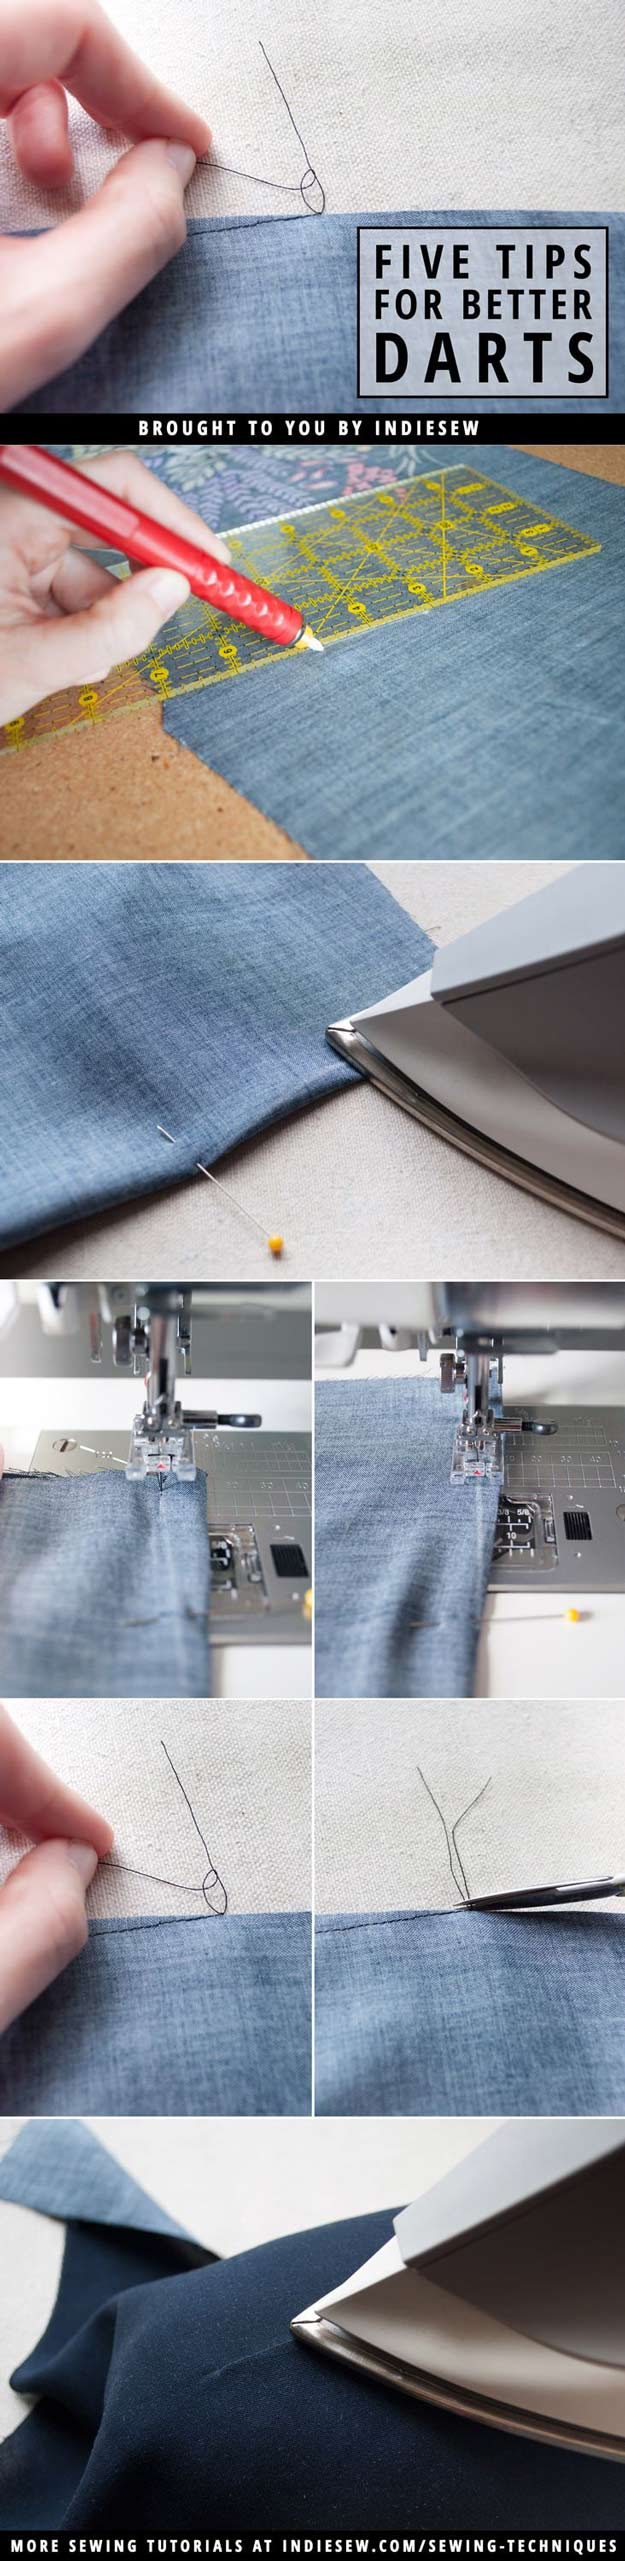 Sewing Hacks   Best Tips and Tricks for Sewing Patterns, Projects, Machines, Hand Sewn Items. Clever Ideas for Beginners and Even Experts   5 Tips For Better Darts